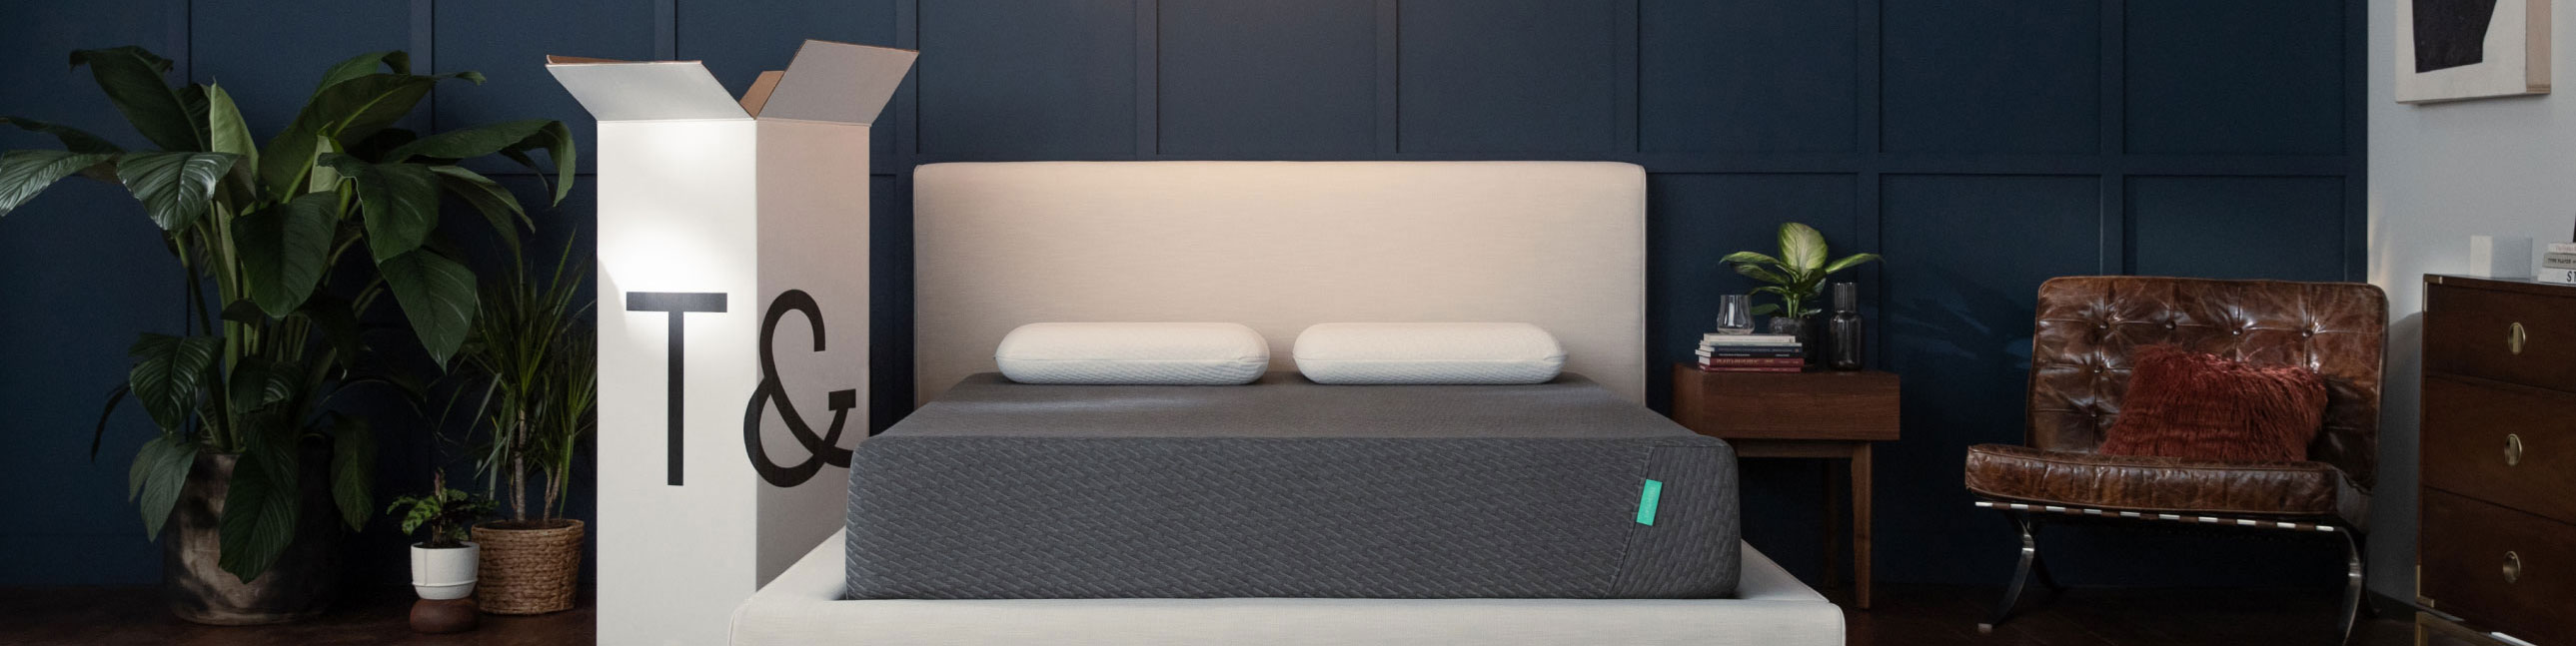 Tuft & Needle Mattresses - Now available at Jordan's Furniture